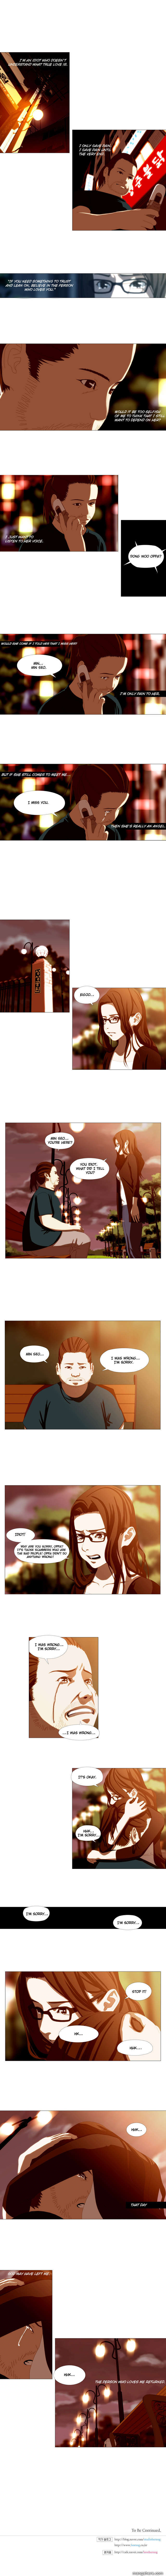 Song Of The Cloud 23 Page 2